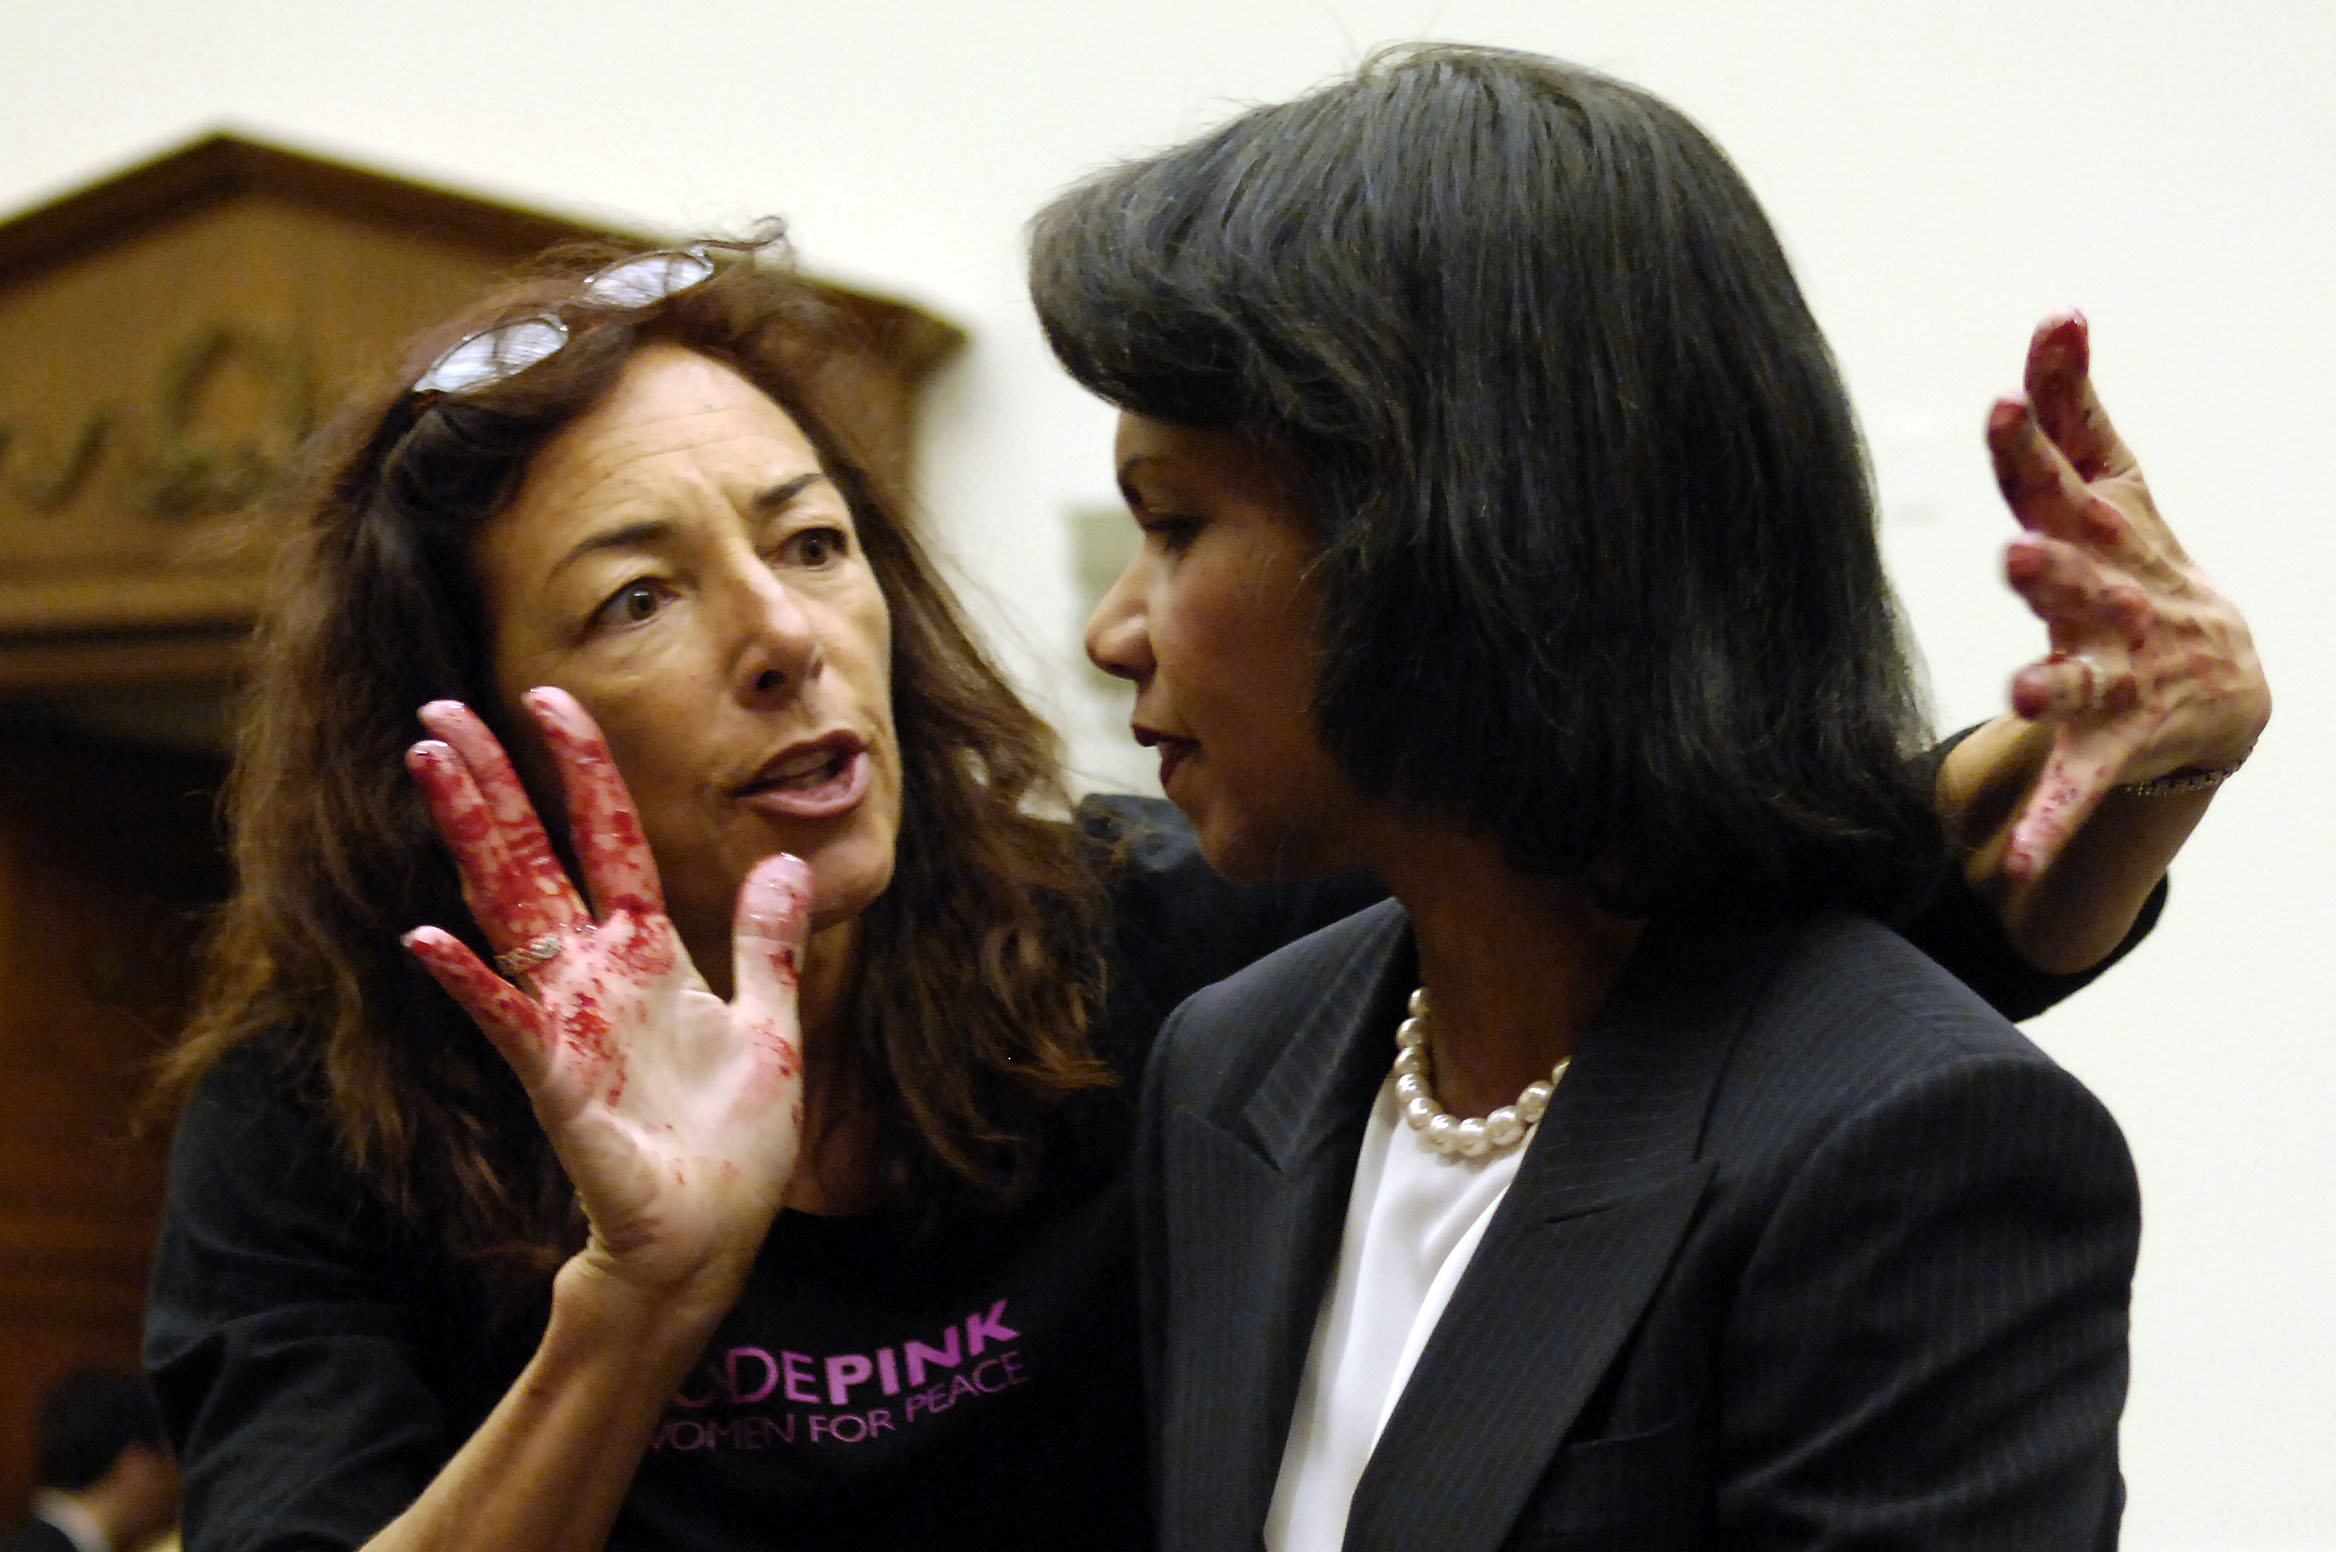 US Secretary of State Condoleeza Rice is accosted by Code Pink protester Desiree Farooz who had simulated blood on her hands just before the Secretary was to give Testimony on the U.S. Middle East Policy before the House Foreign Affairs Committee.Oct 24, 2007 ©Louie Palu/ZUMAPRESS.com